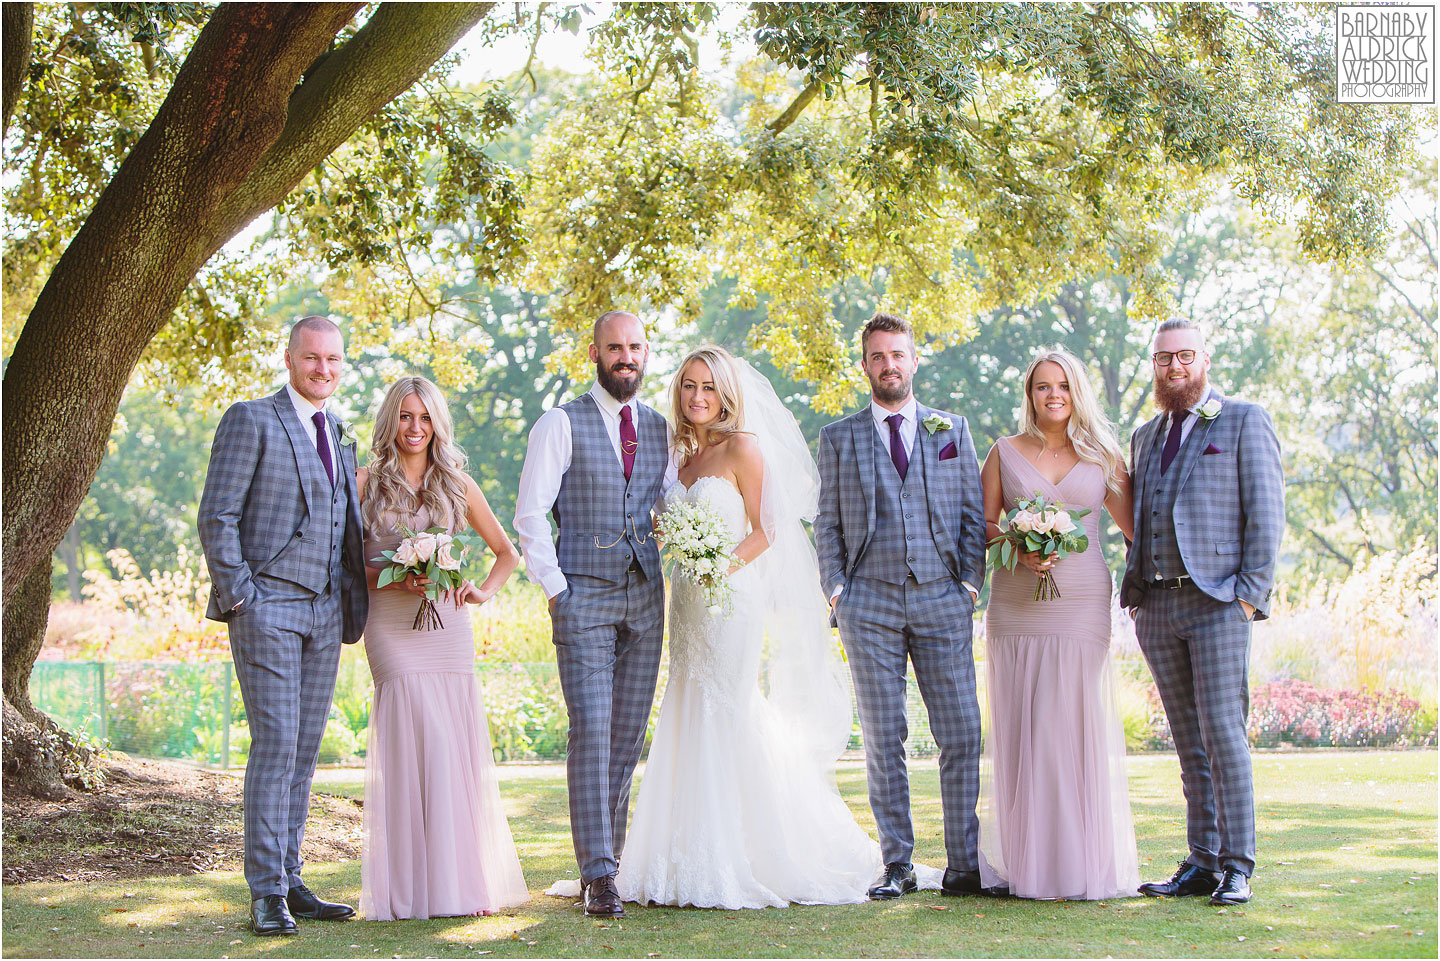 Beautiful Group wedding photo at Bowcliffe Hall, Amazing Yorkshire Wedding Photos, Best Yorkshire Wedding Photos 2018